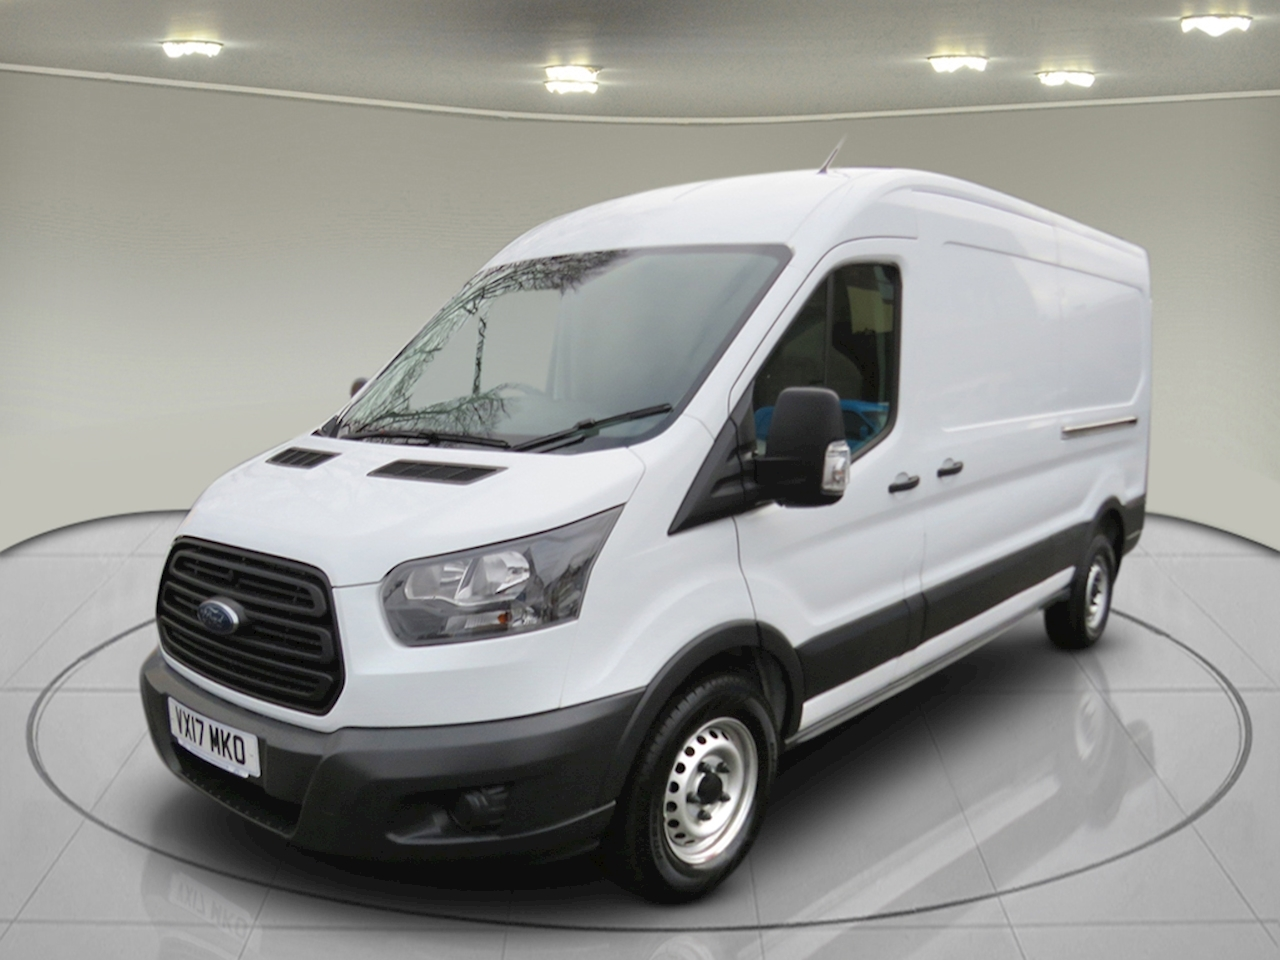 Ford Transit 350 EcoBlue L3 H2 EURO 6 2.0 5dr Panel Van Manual Diesel